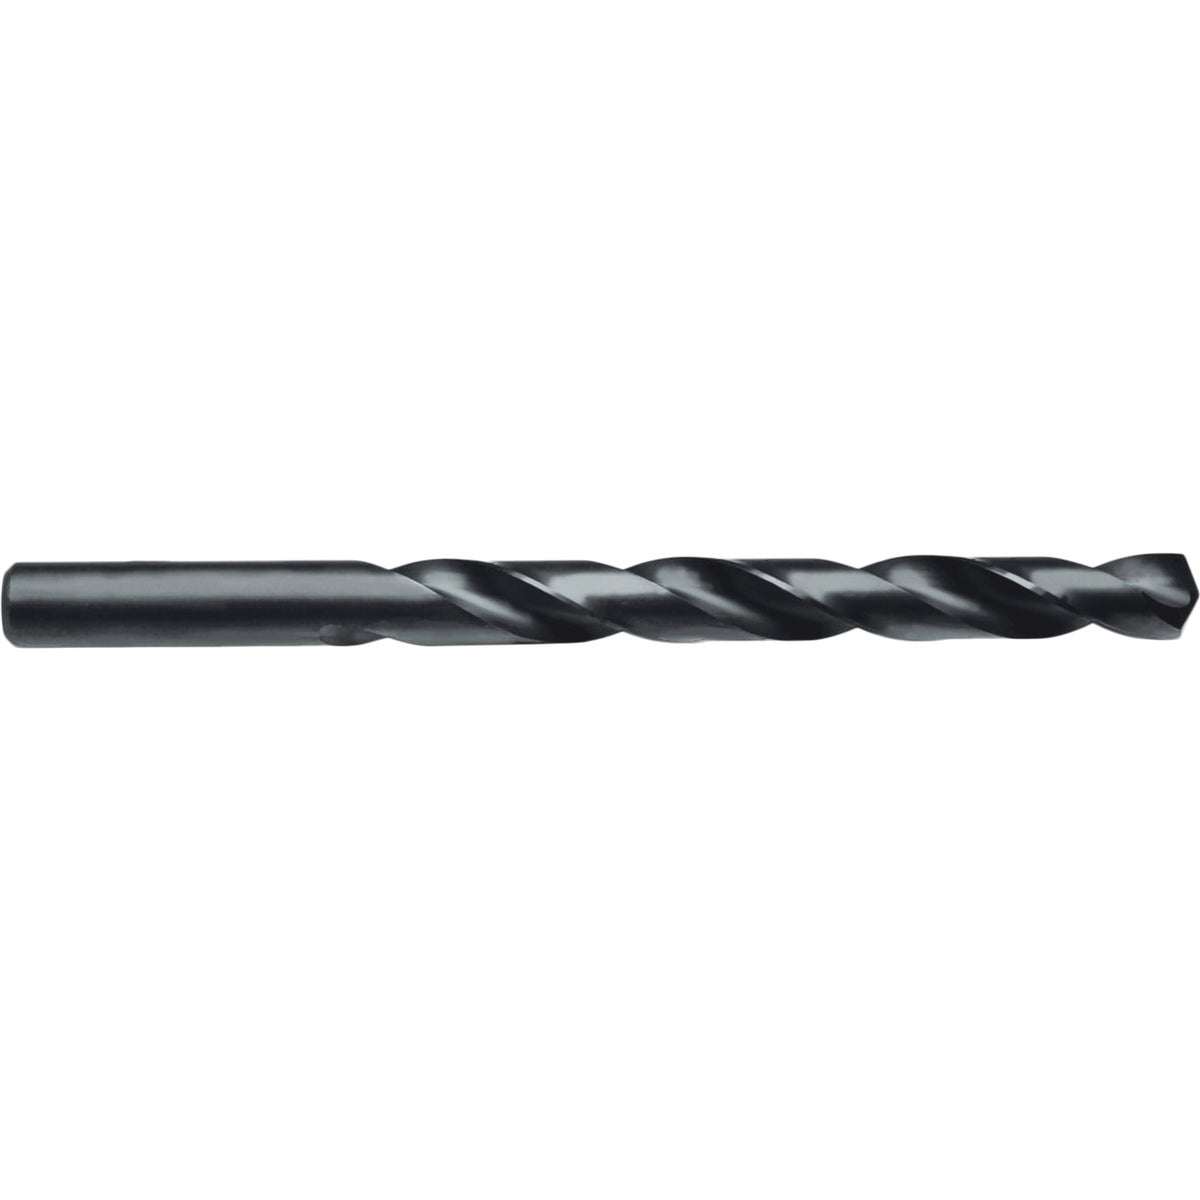 "1/2"" BLACK OXIDE BIT - DW1132 by DeWalt"